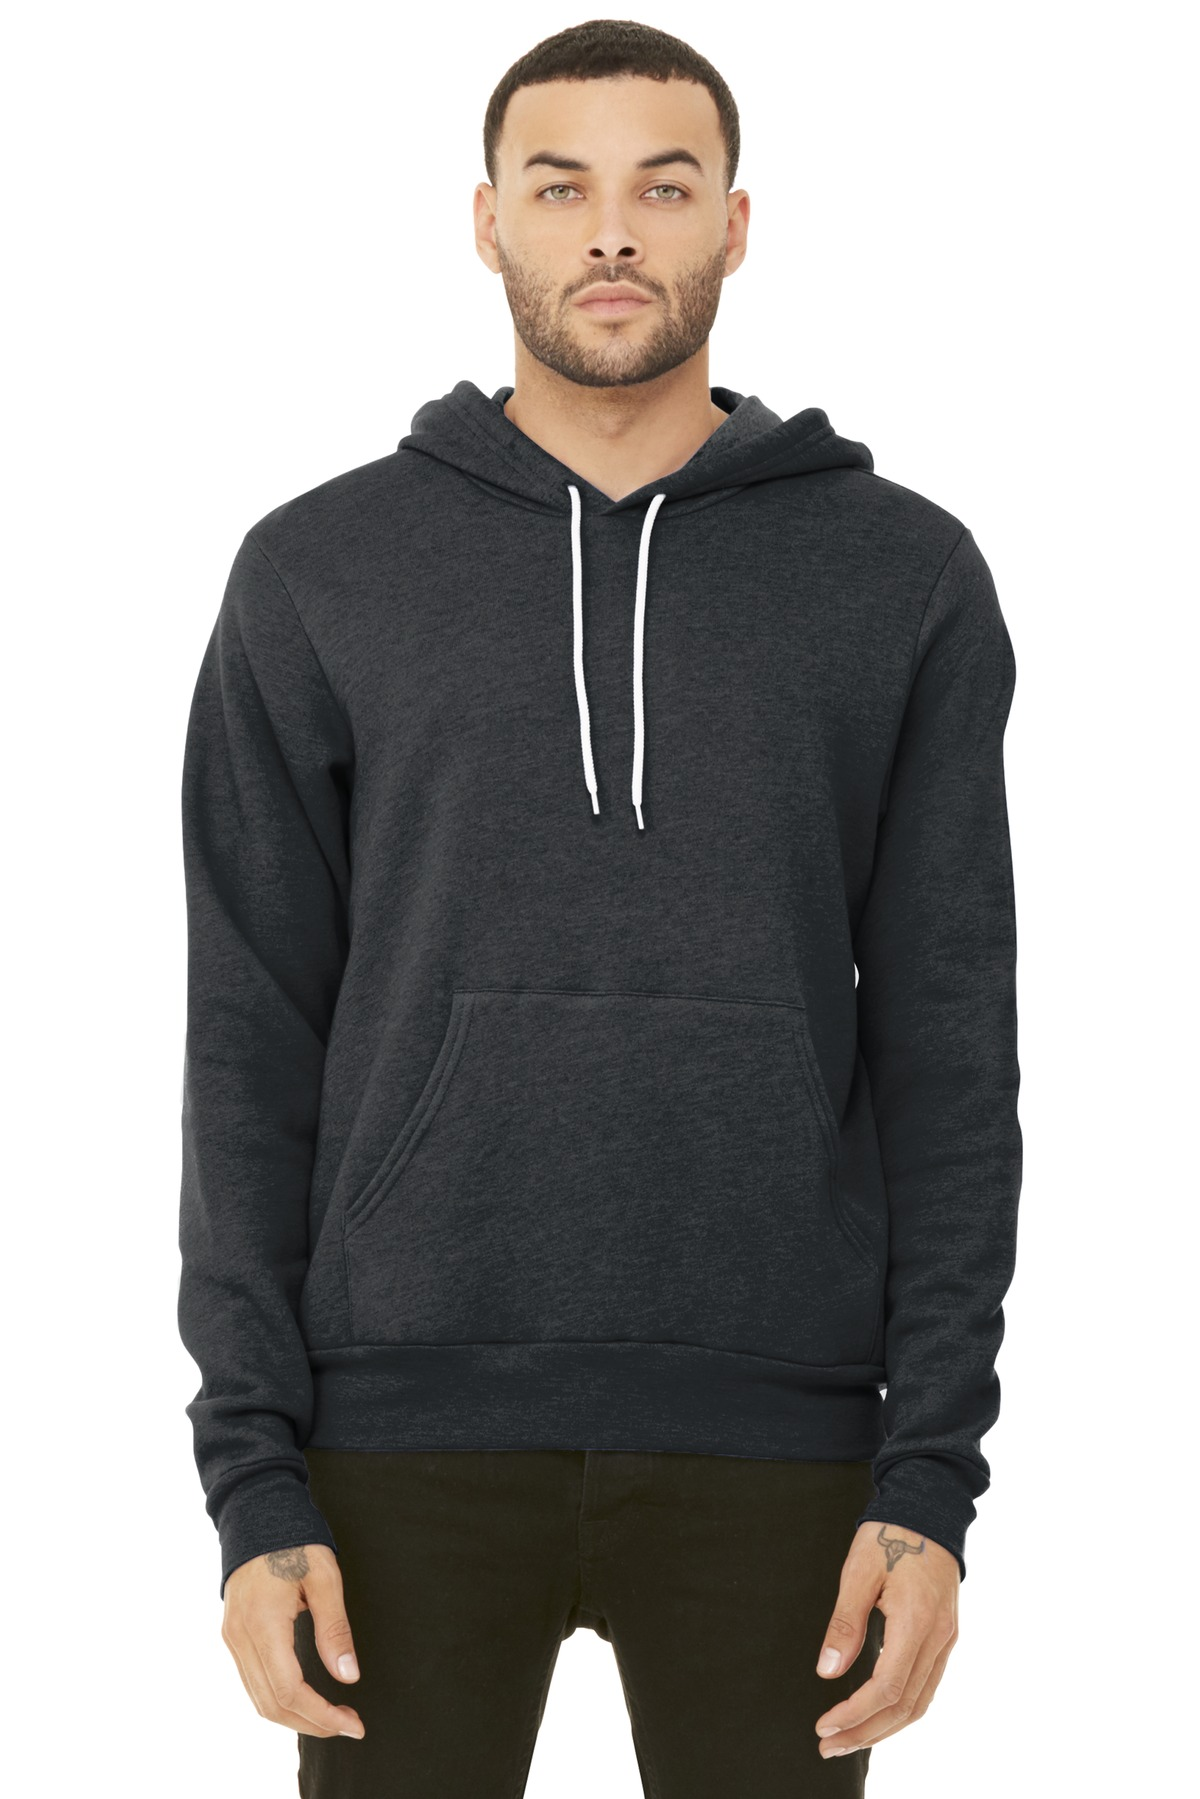 BELLA+CANVAS  ®  Unisex Sponge Fleece Pullover Hoodie. BC3719 - Dark Grey Heather